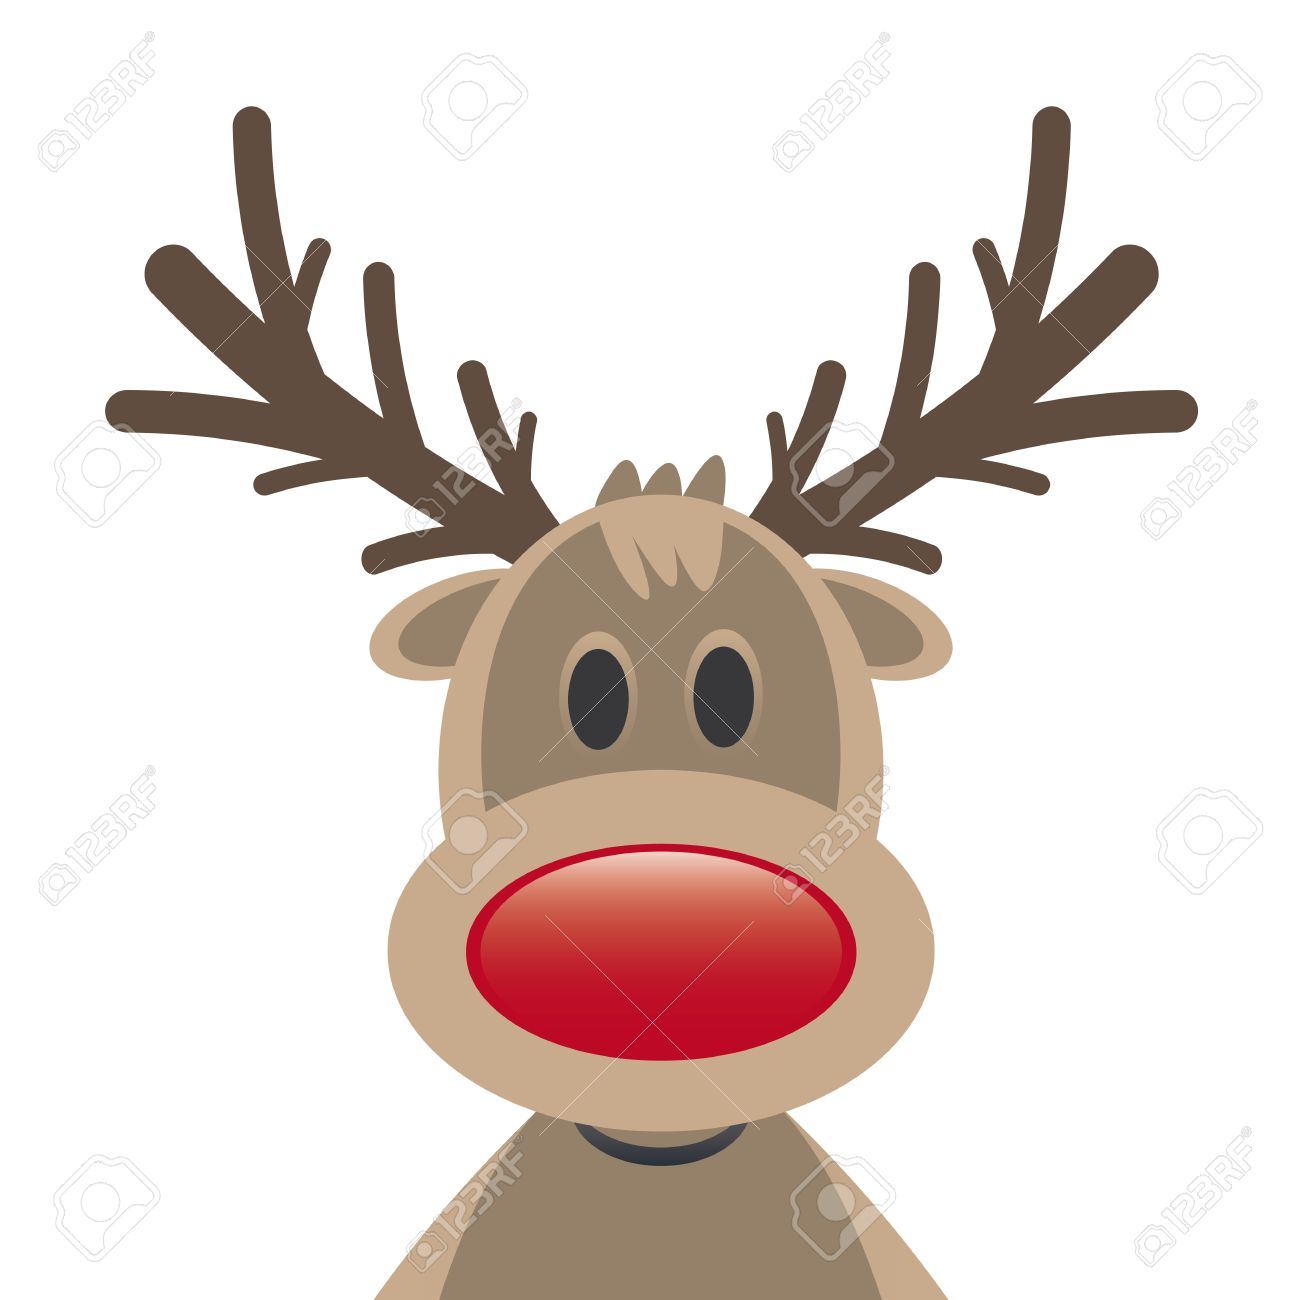 834 Rudolph Nose Stock Vector Illustration And Royalty Free.